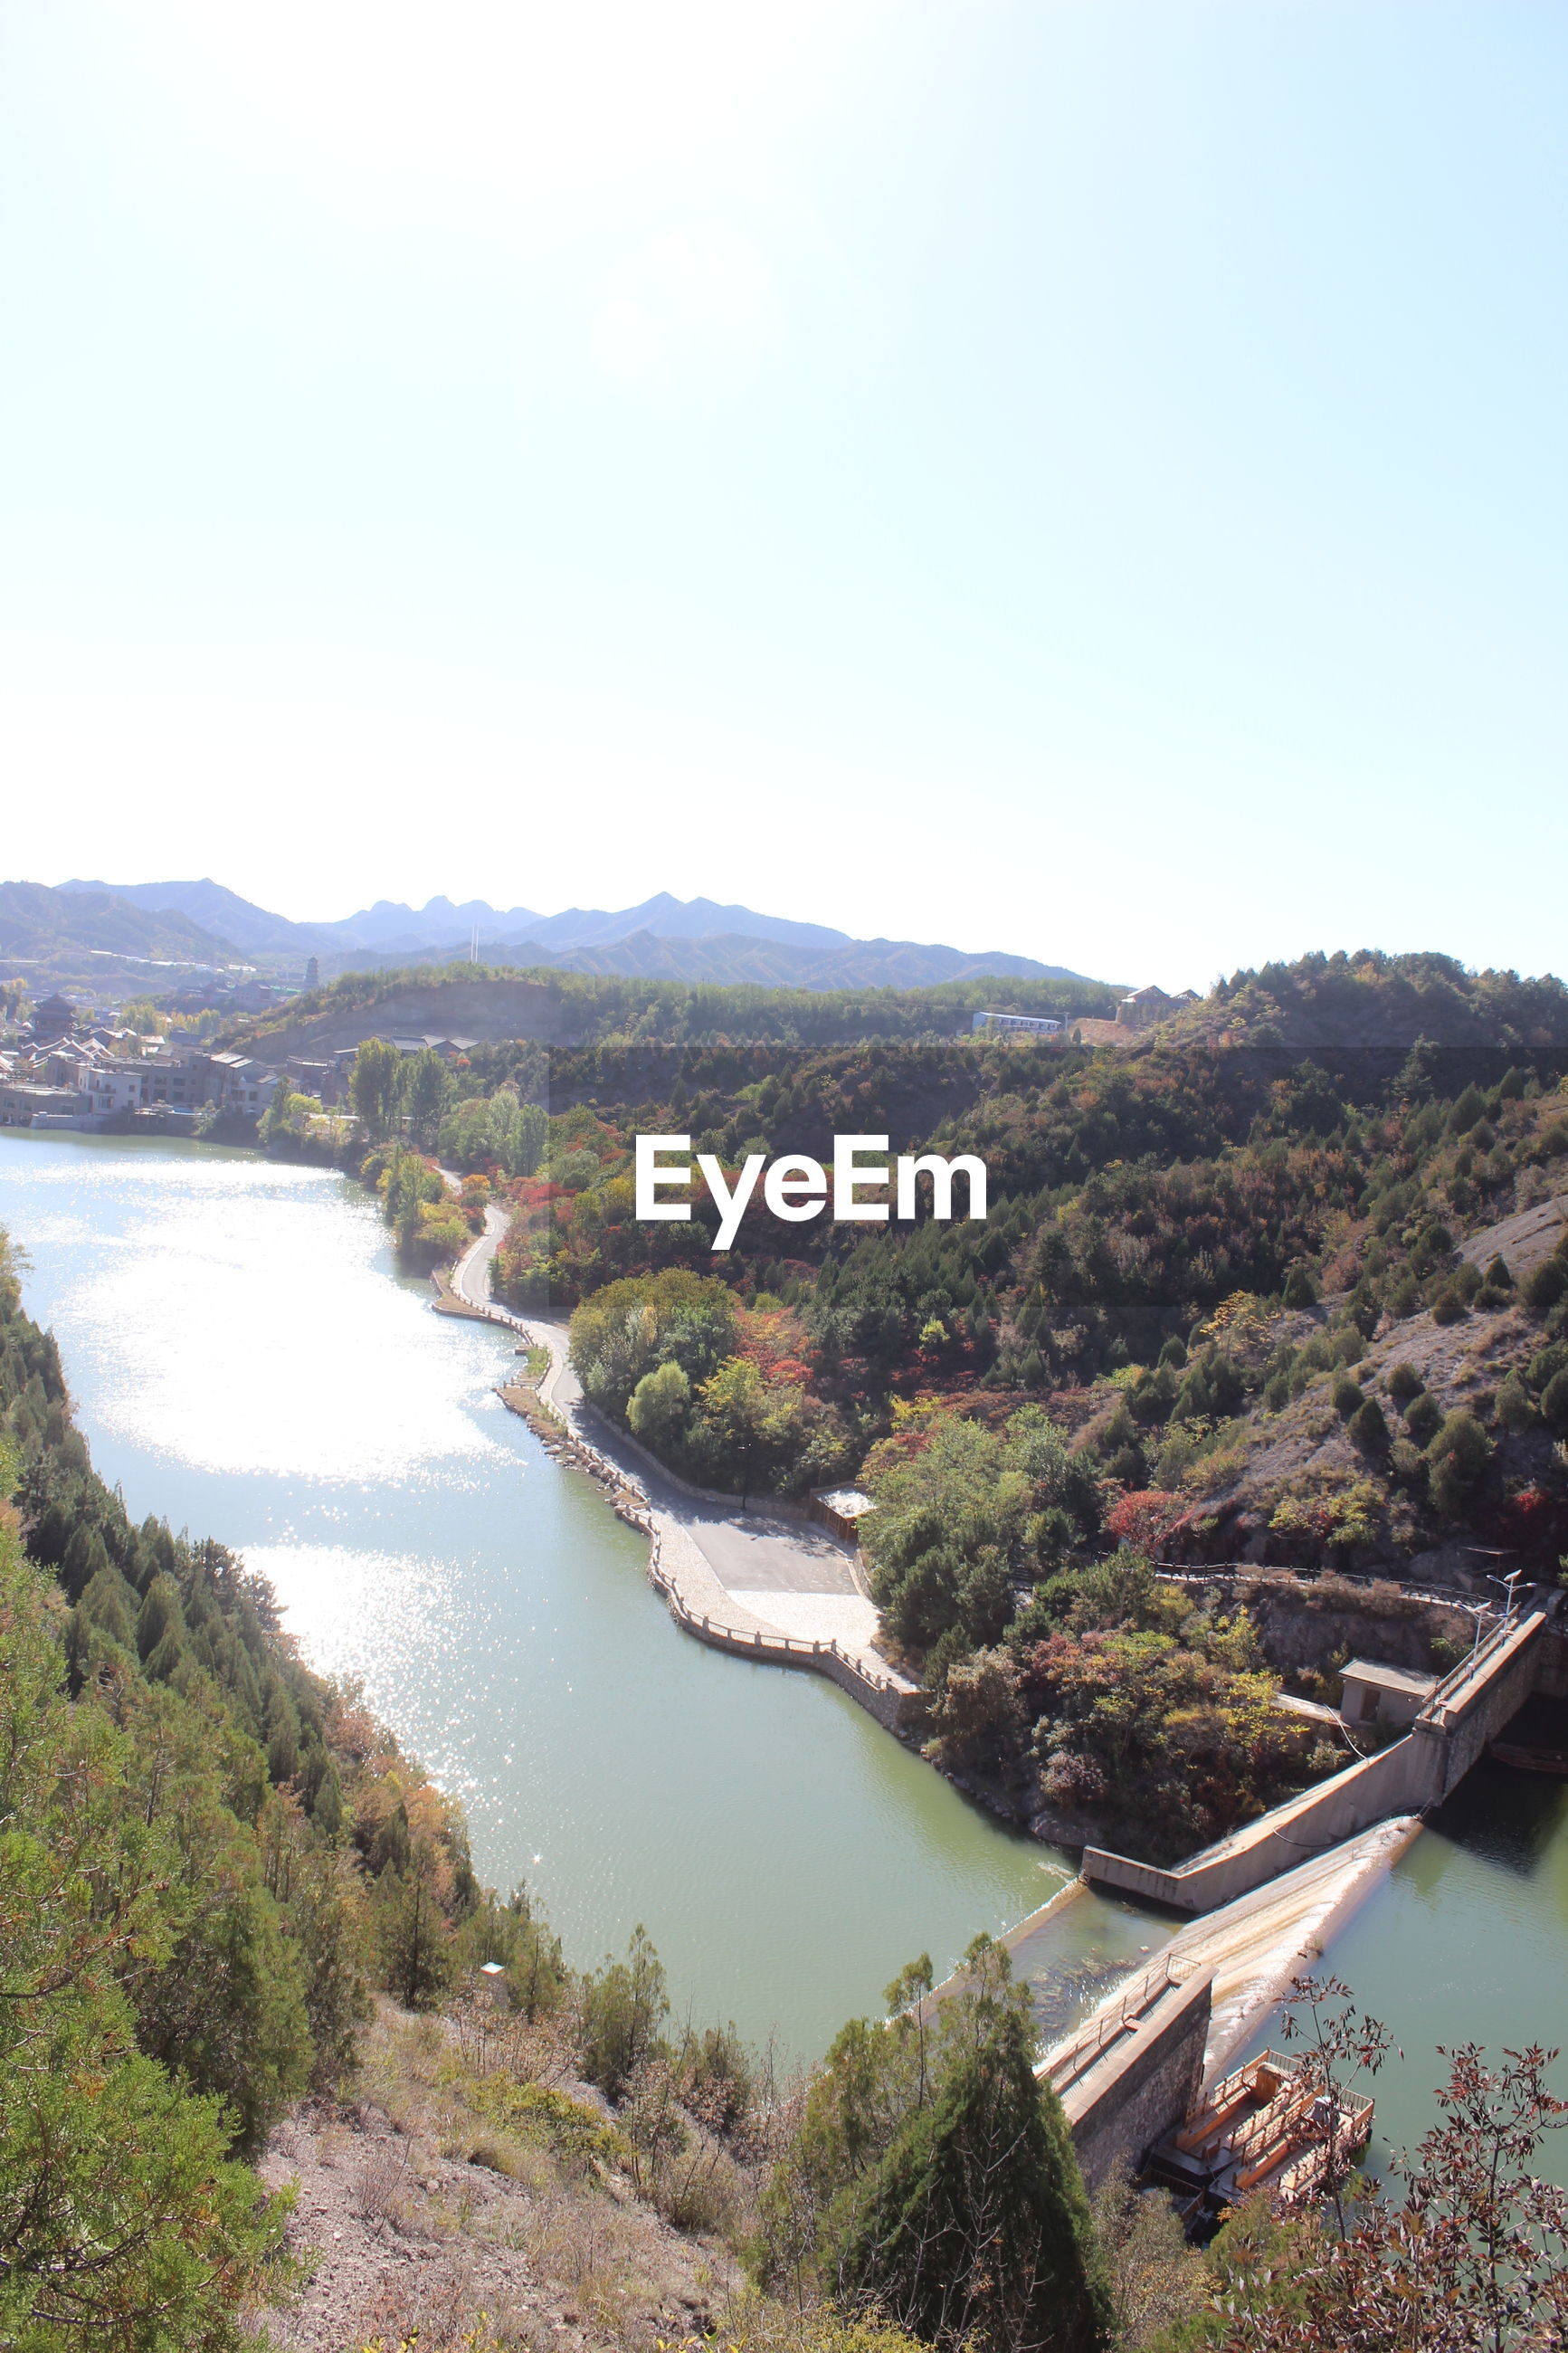 HIGH ANGLE VIEW OF RIVER AMIDST GREEN LANDSCAPE AGAINST CLEAR SKY